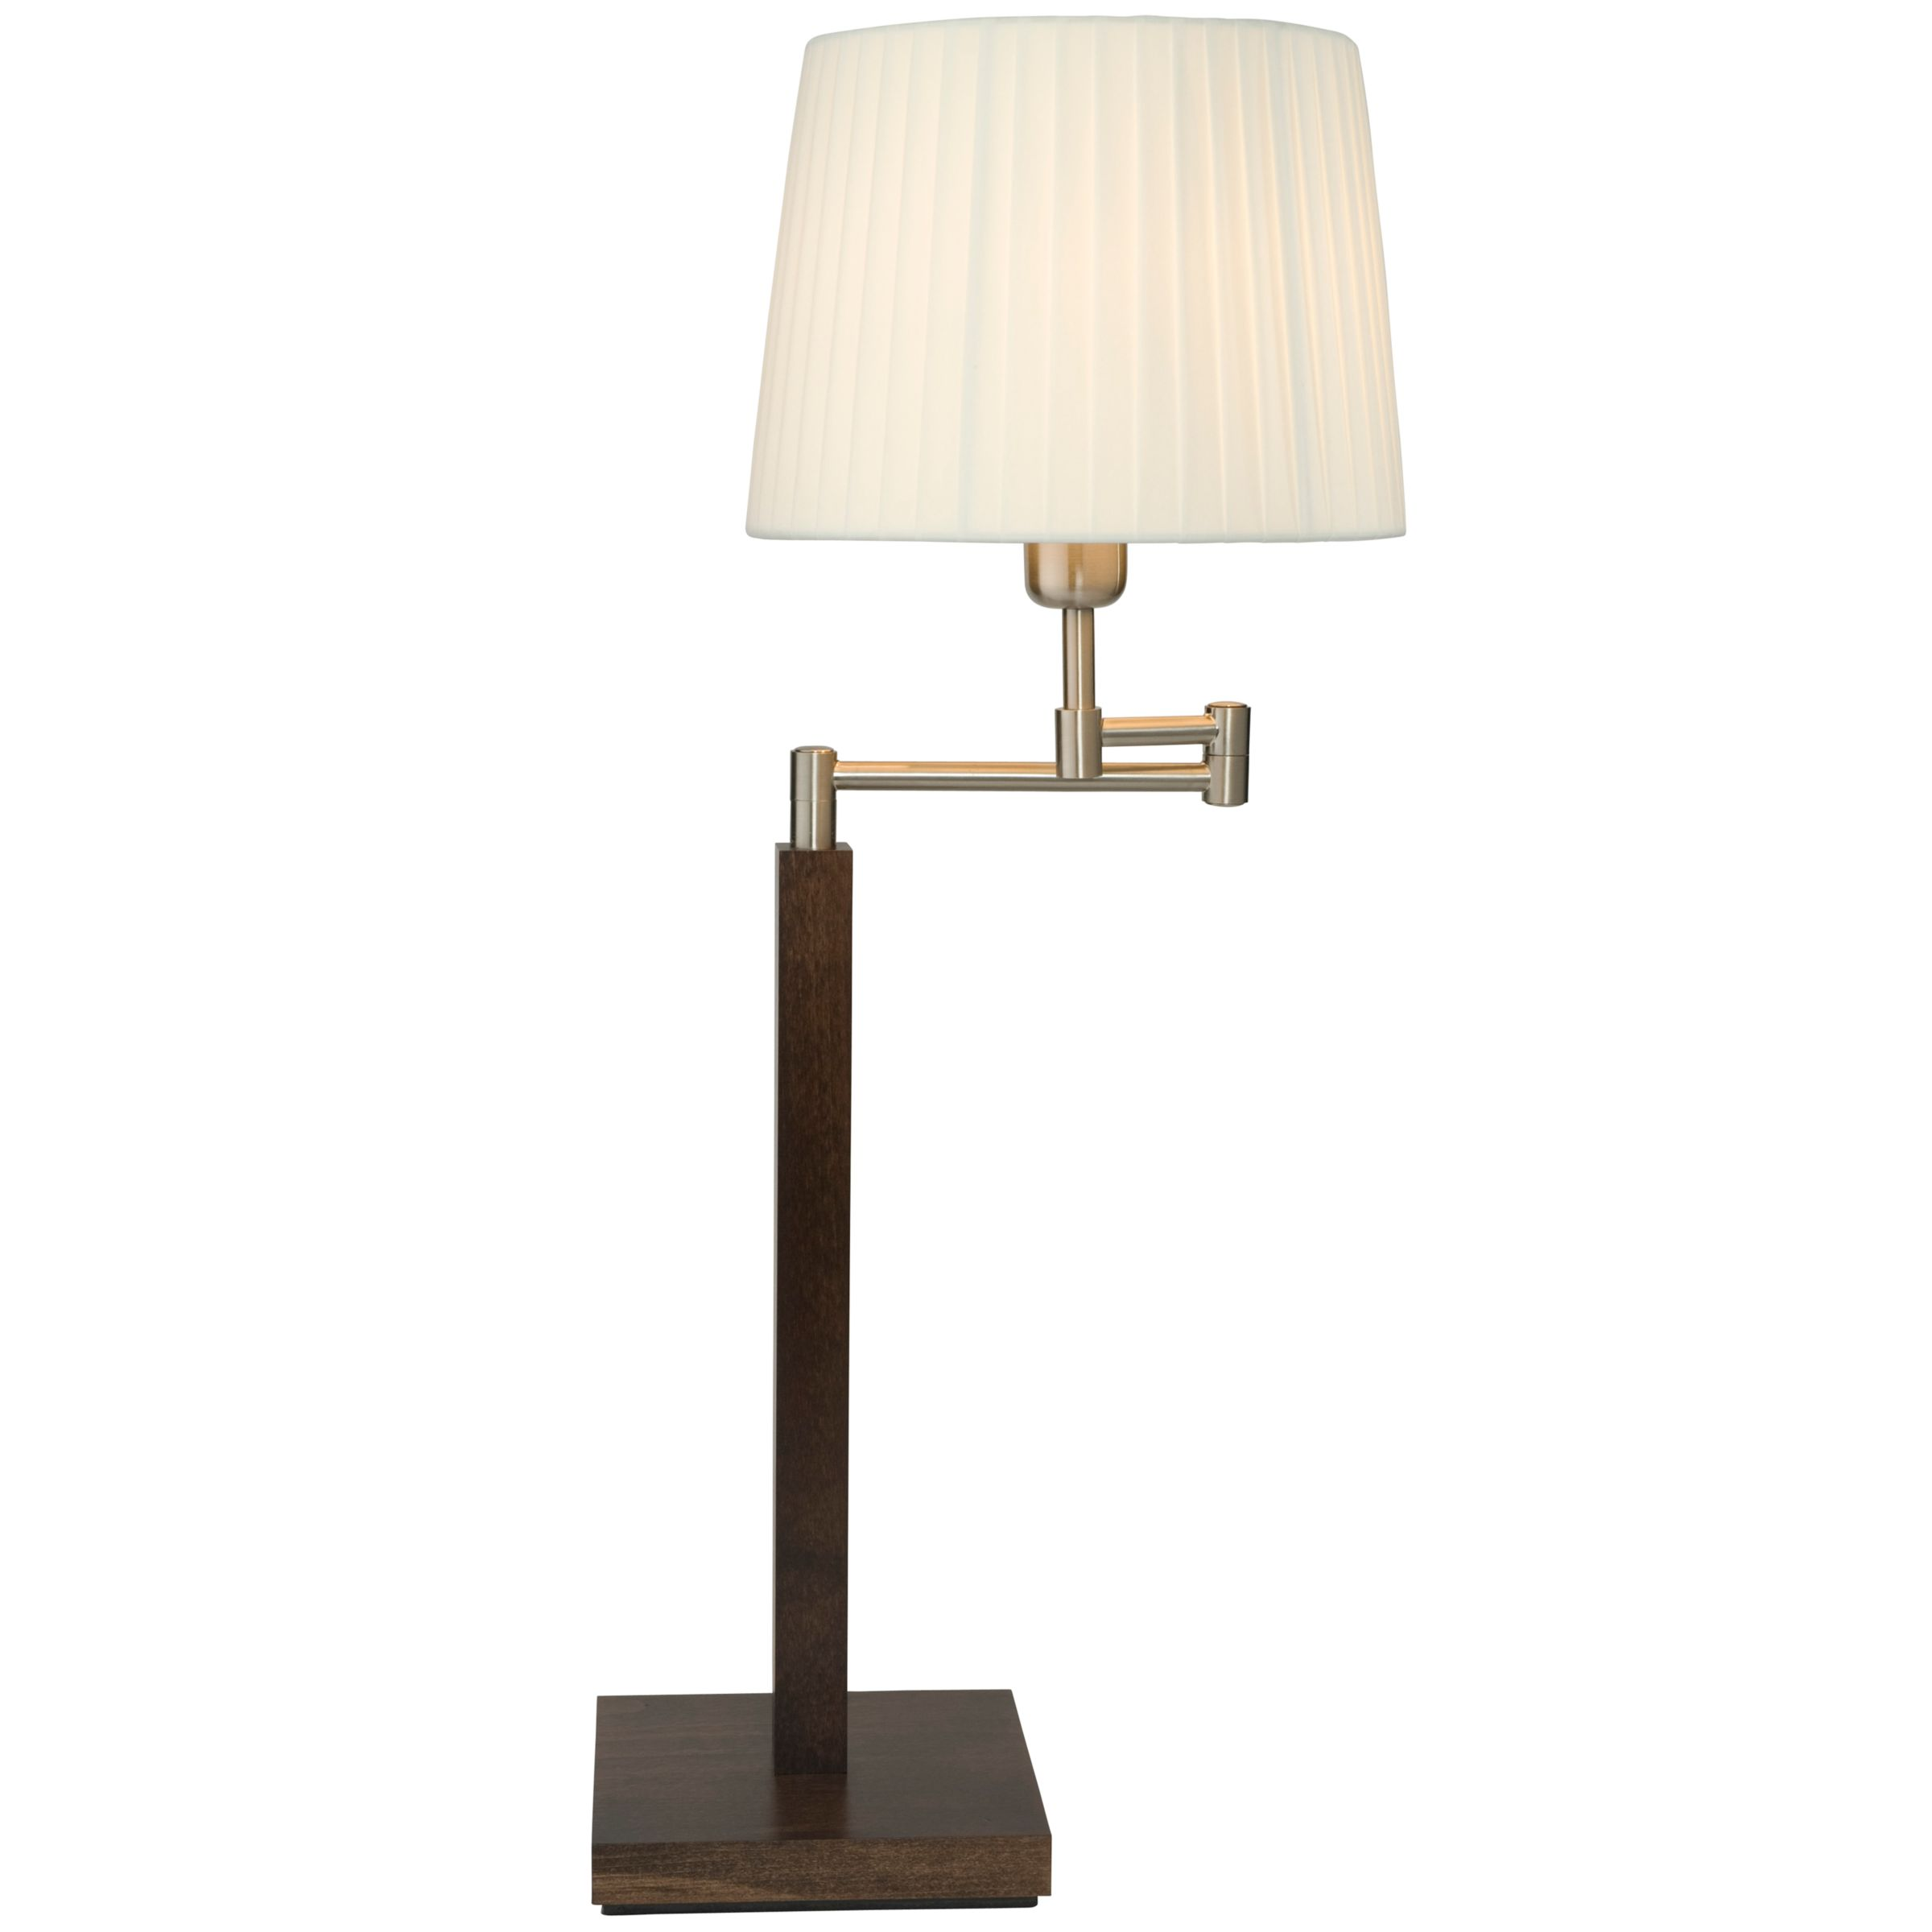 John lewis ava swing arm table lamp review compare for Table lamp shades john lewis